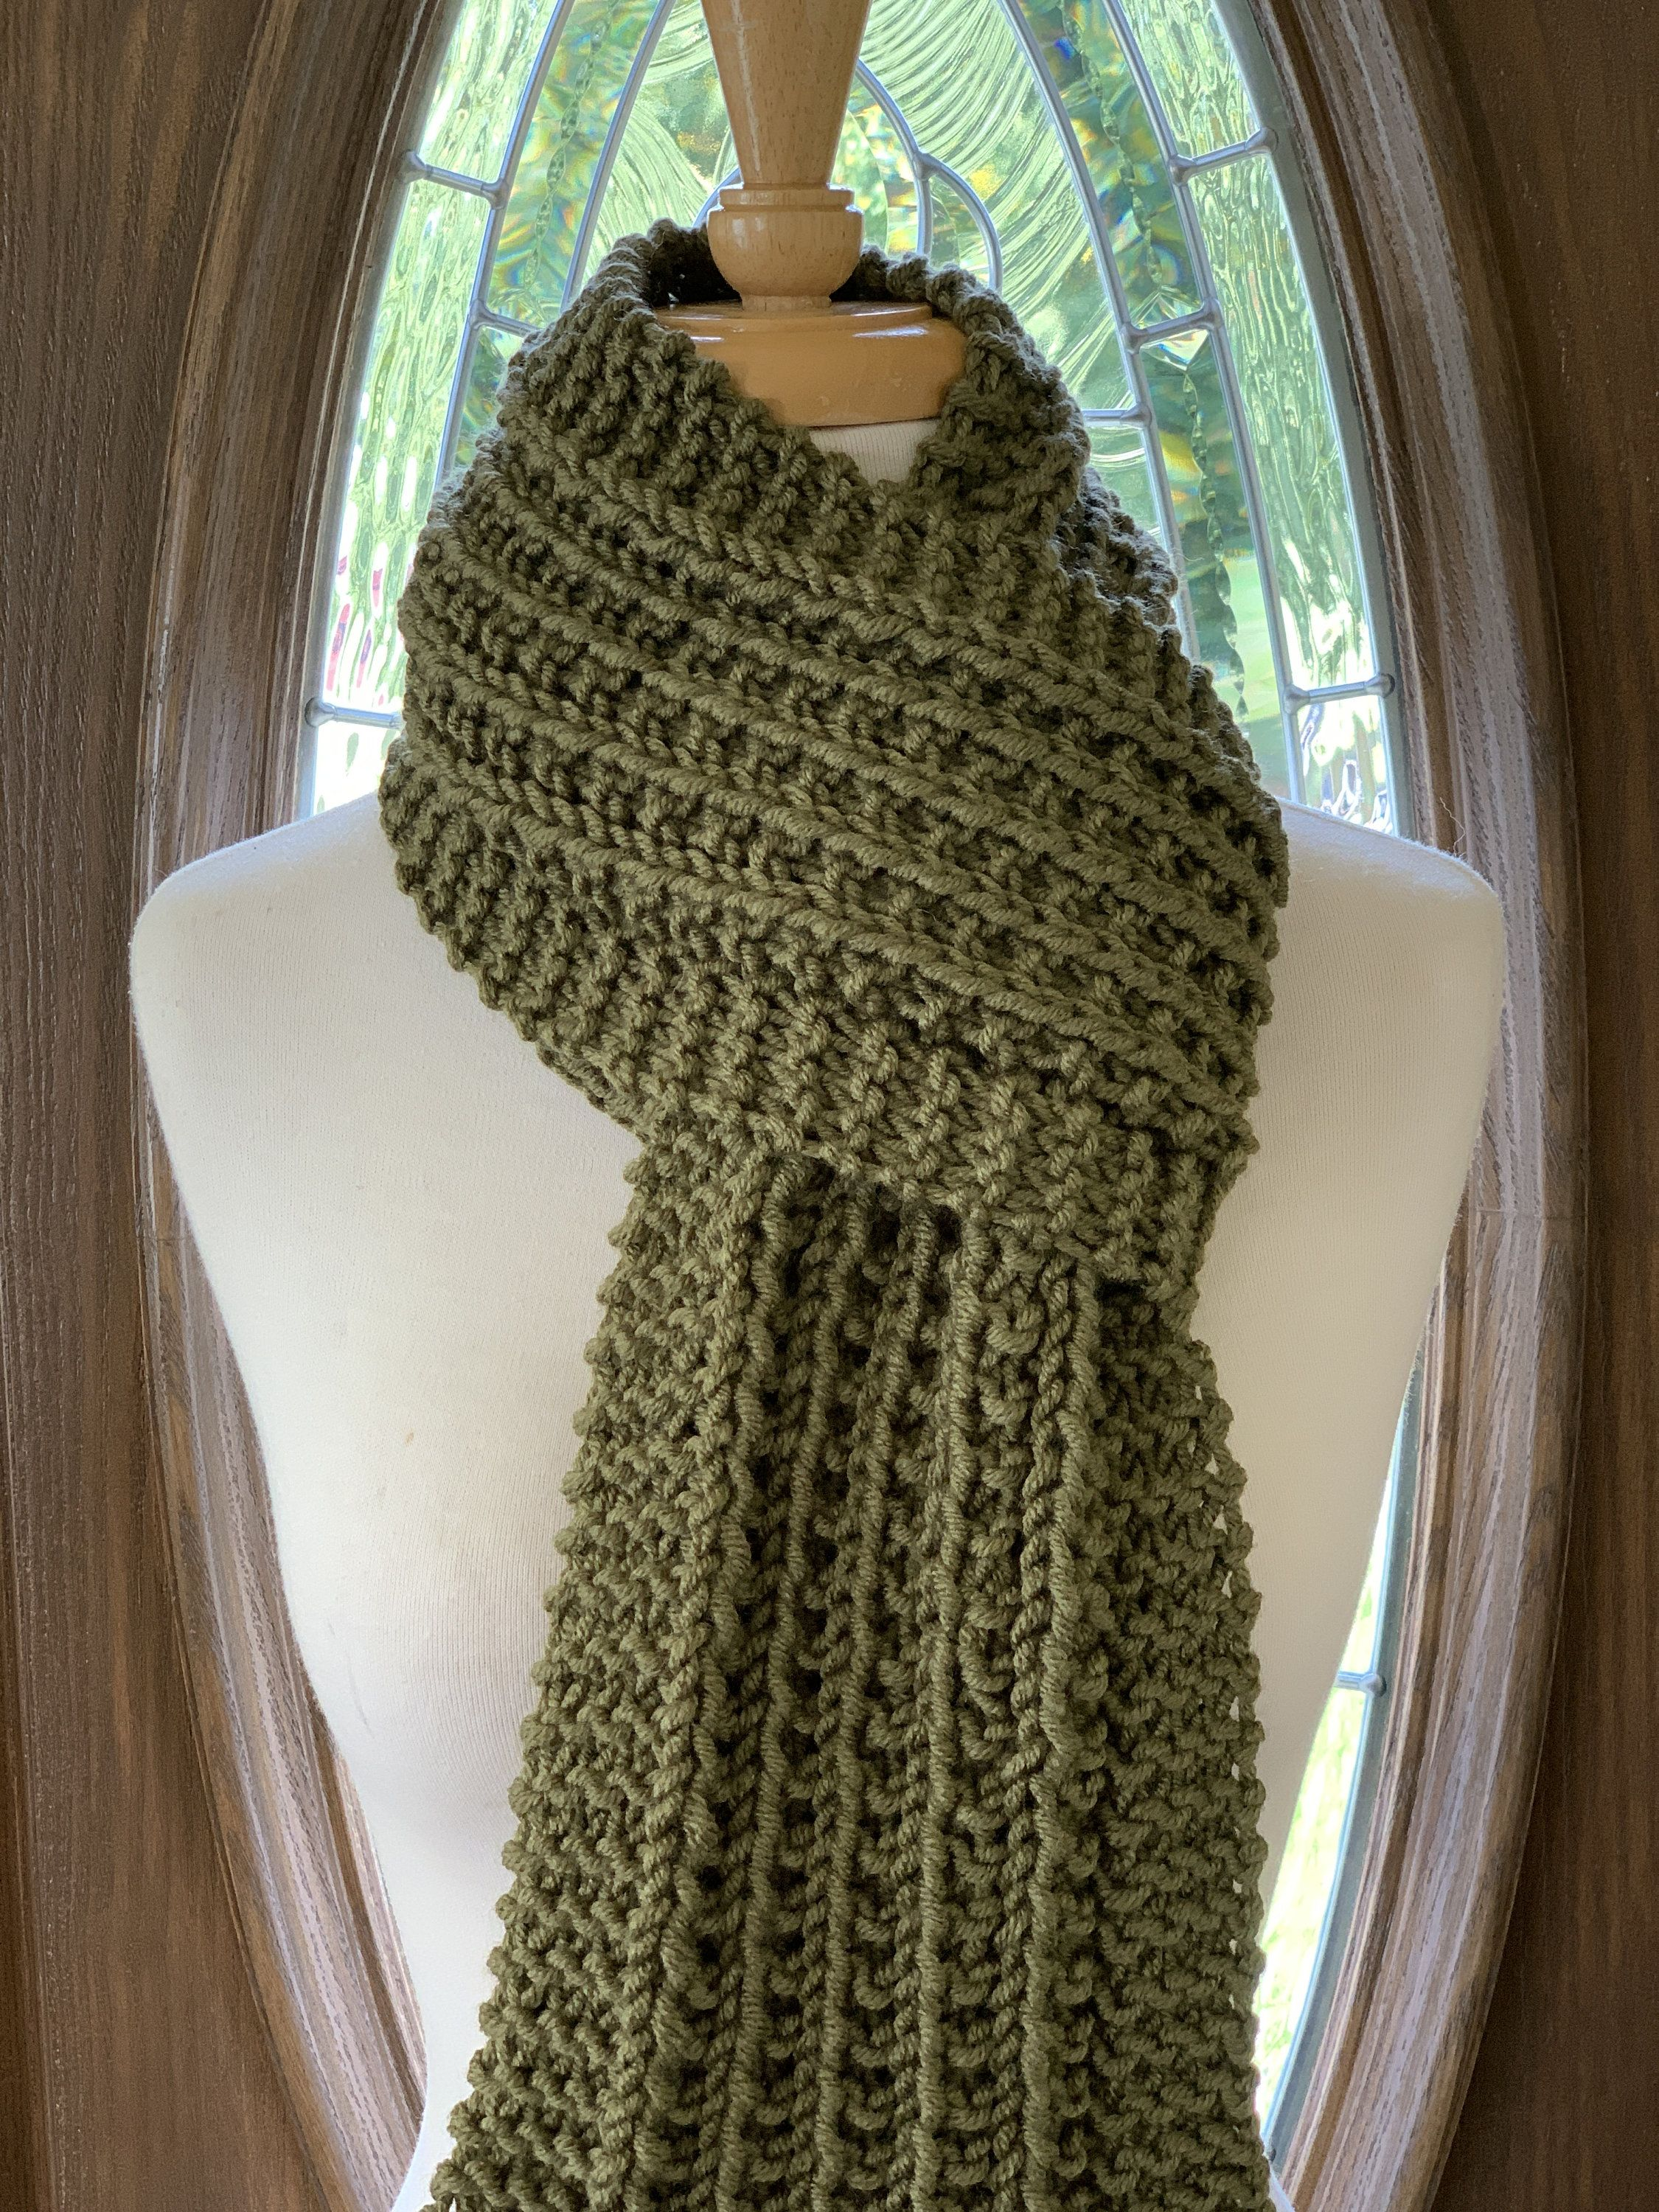 Photo of Hand Knit Scarf Knit Neck Wrap Knit Winter Scarf Avocado Olive Green Scarf For Women and Men Reversible Pattern Unisex Scarf